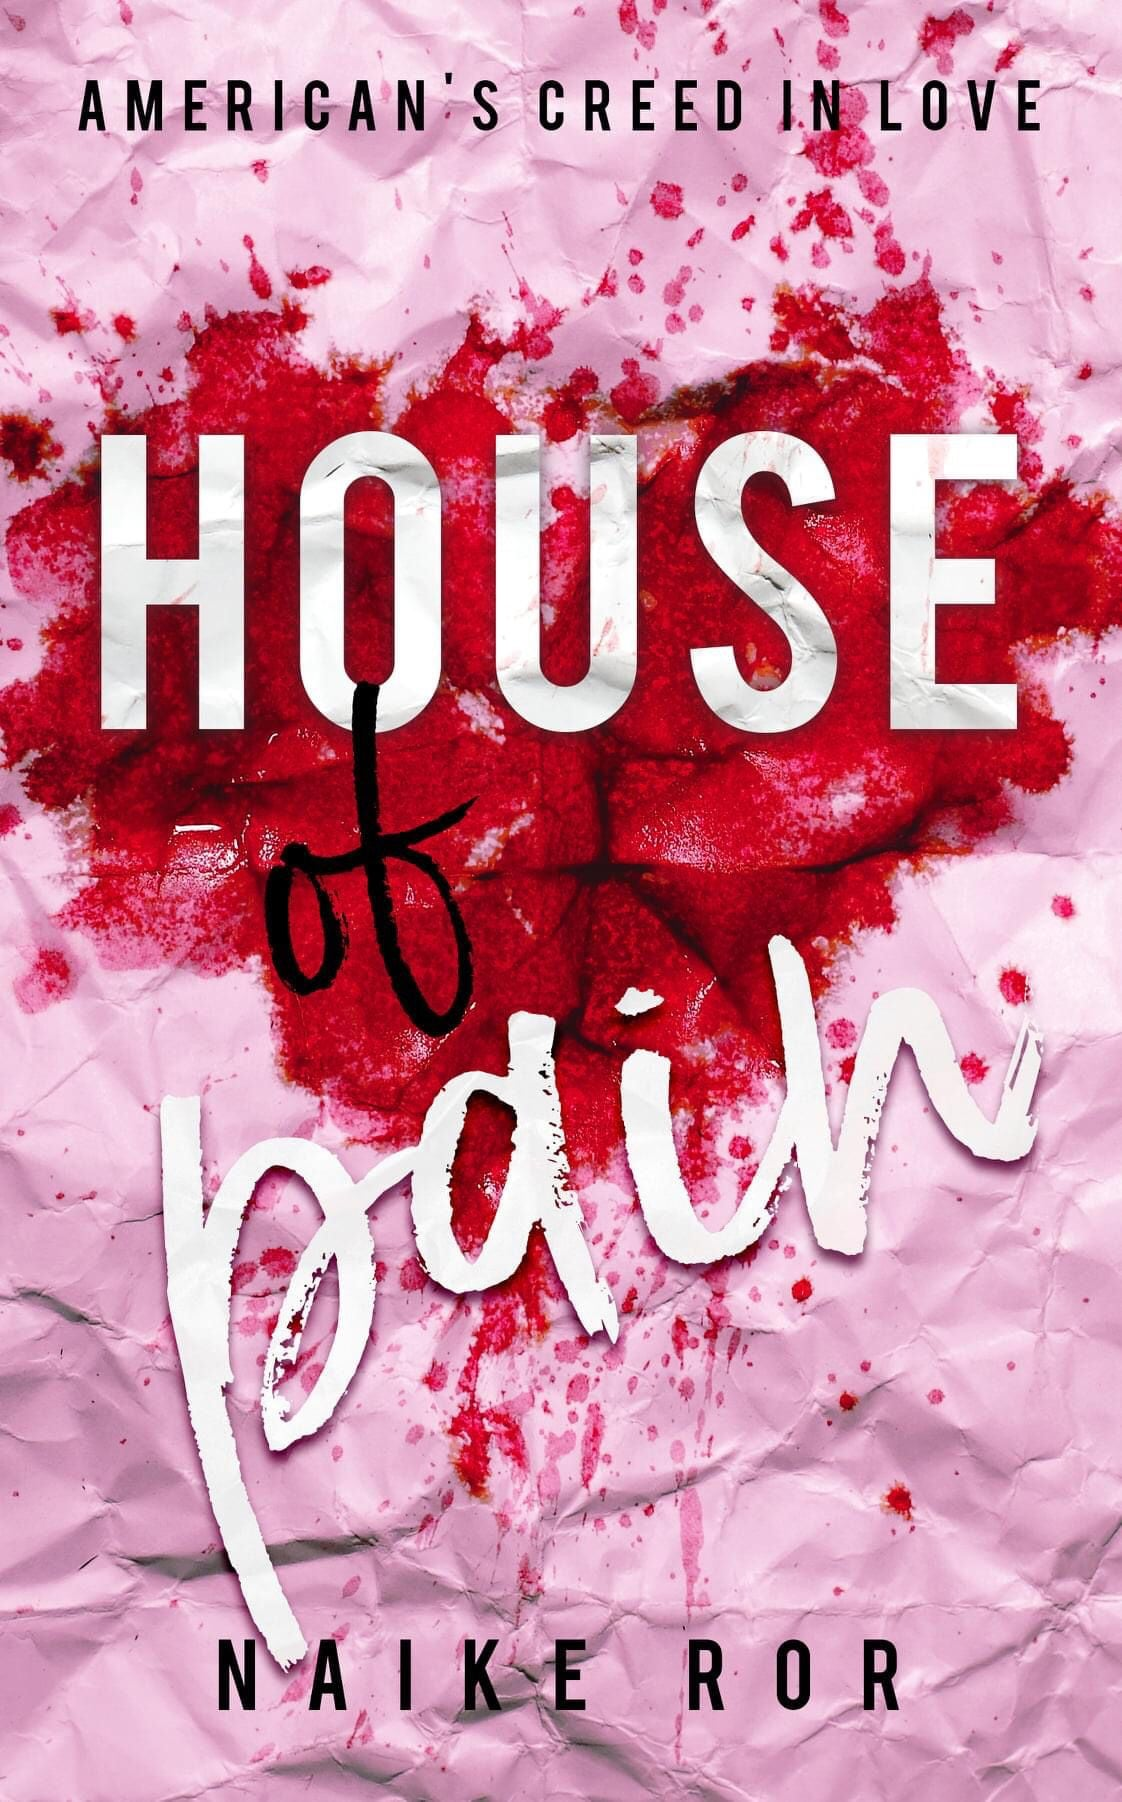 COVER REVEAL: House of pain